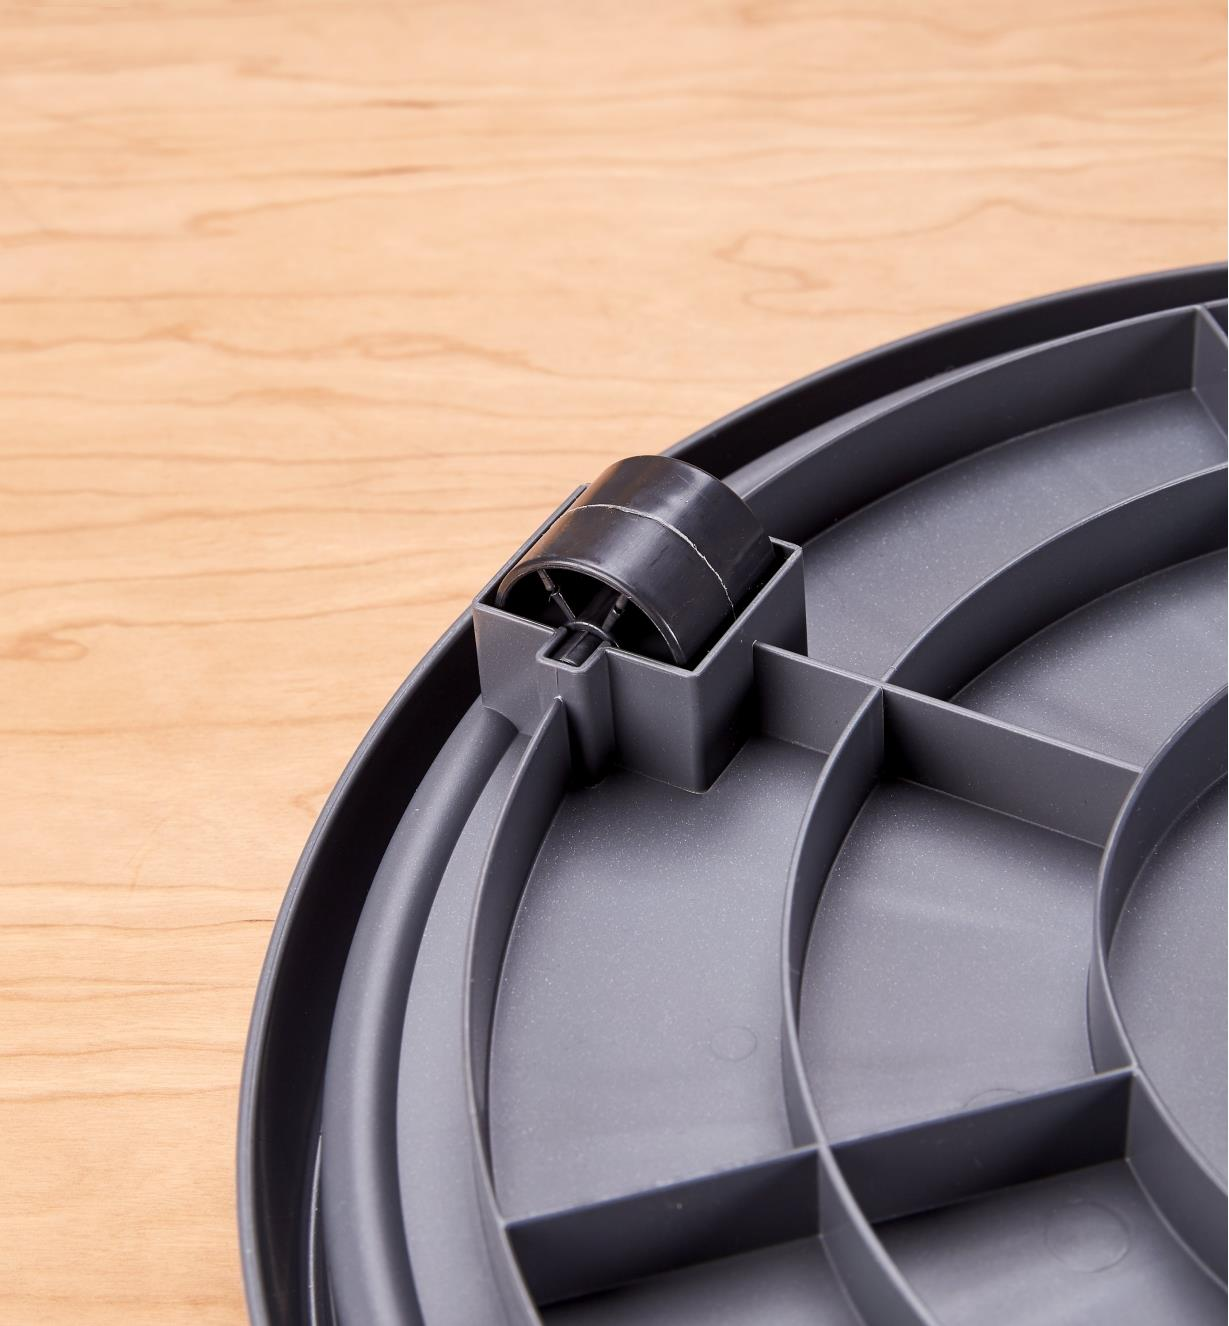 Close view of the rollers on the underside of the Elho rolling pot saucer